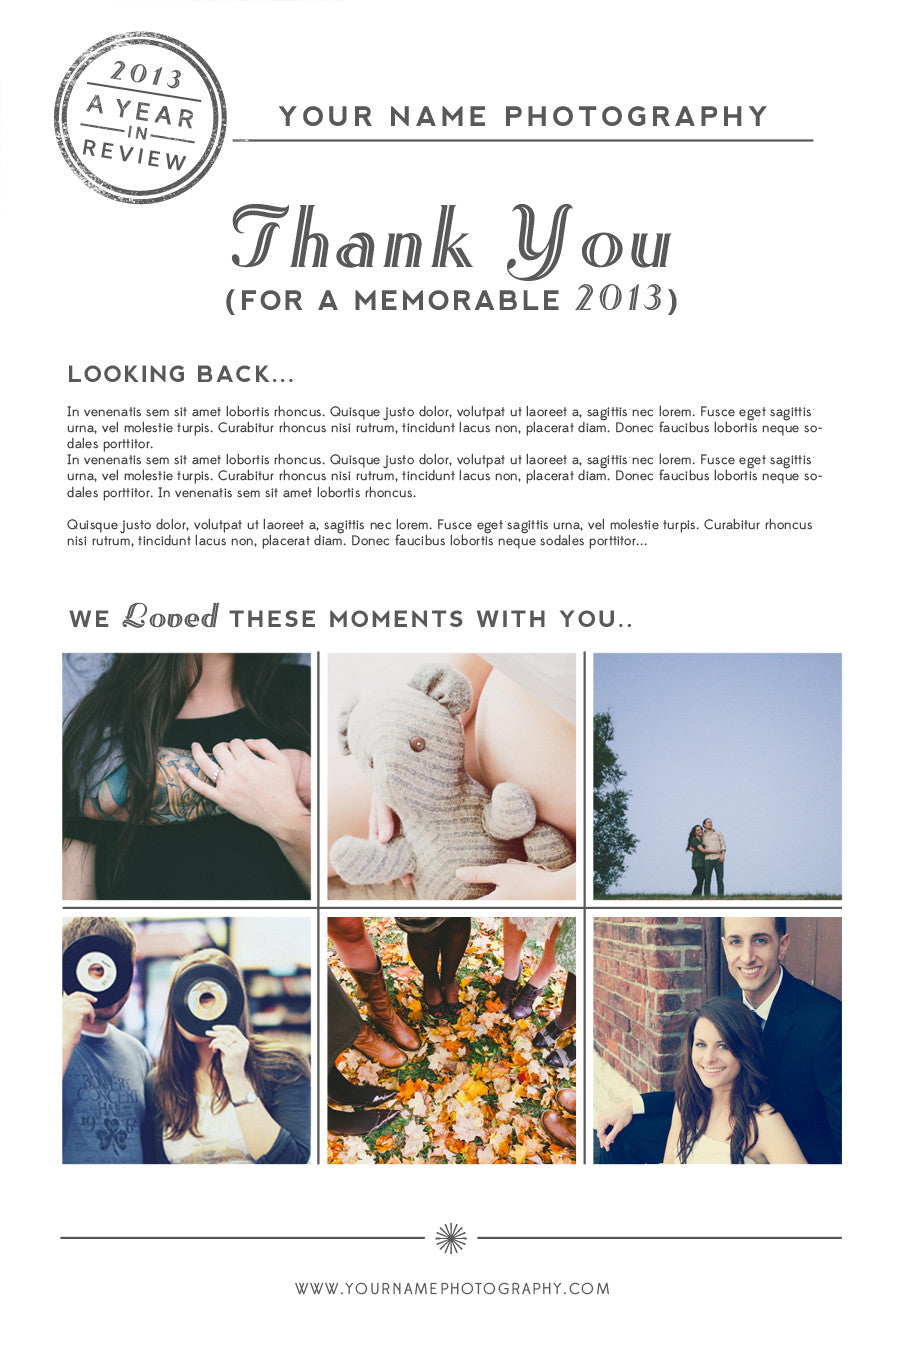 A YEAR IN REVIEW NEWSLETTER PHOTOSHOP TEMPLATE